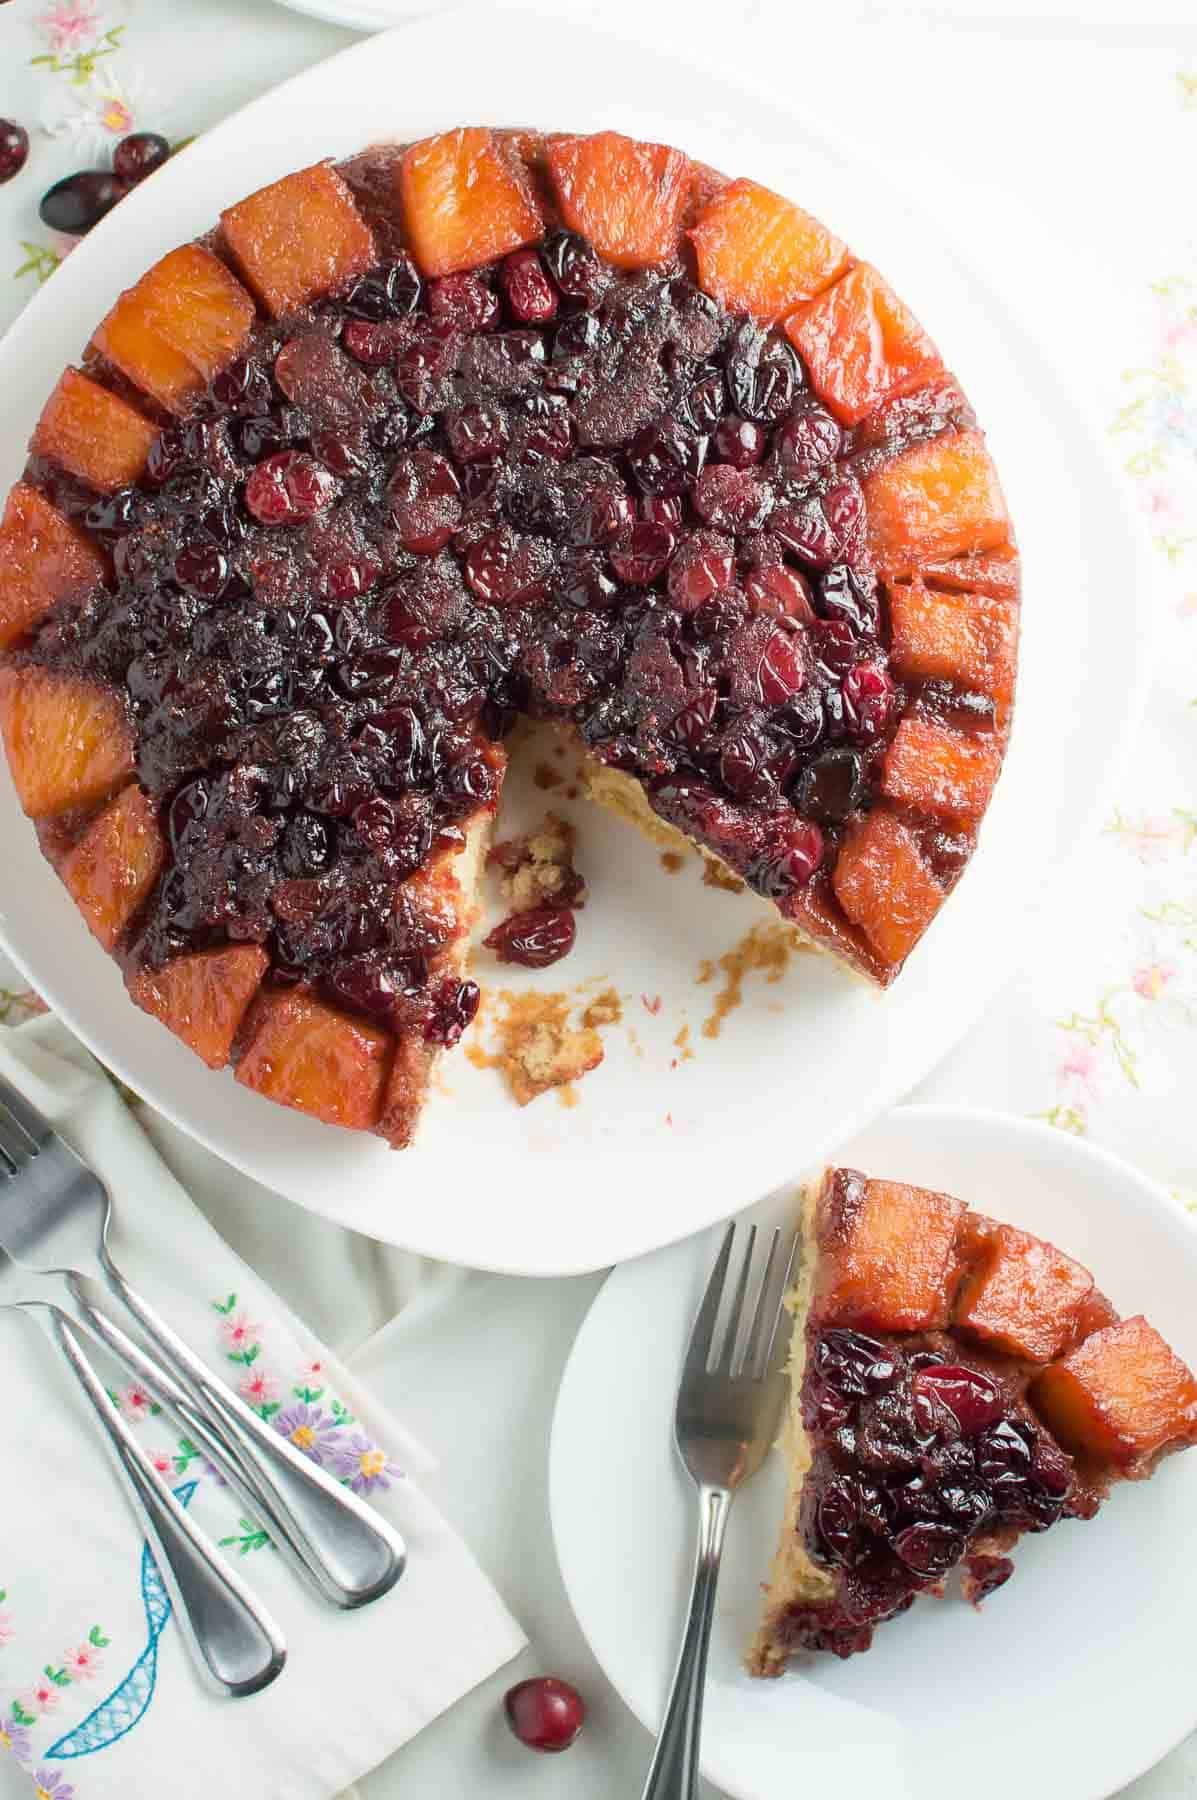 Cranberry Pineapple Upside Down Cake with piece cut out